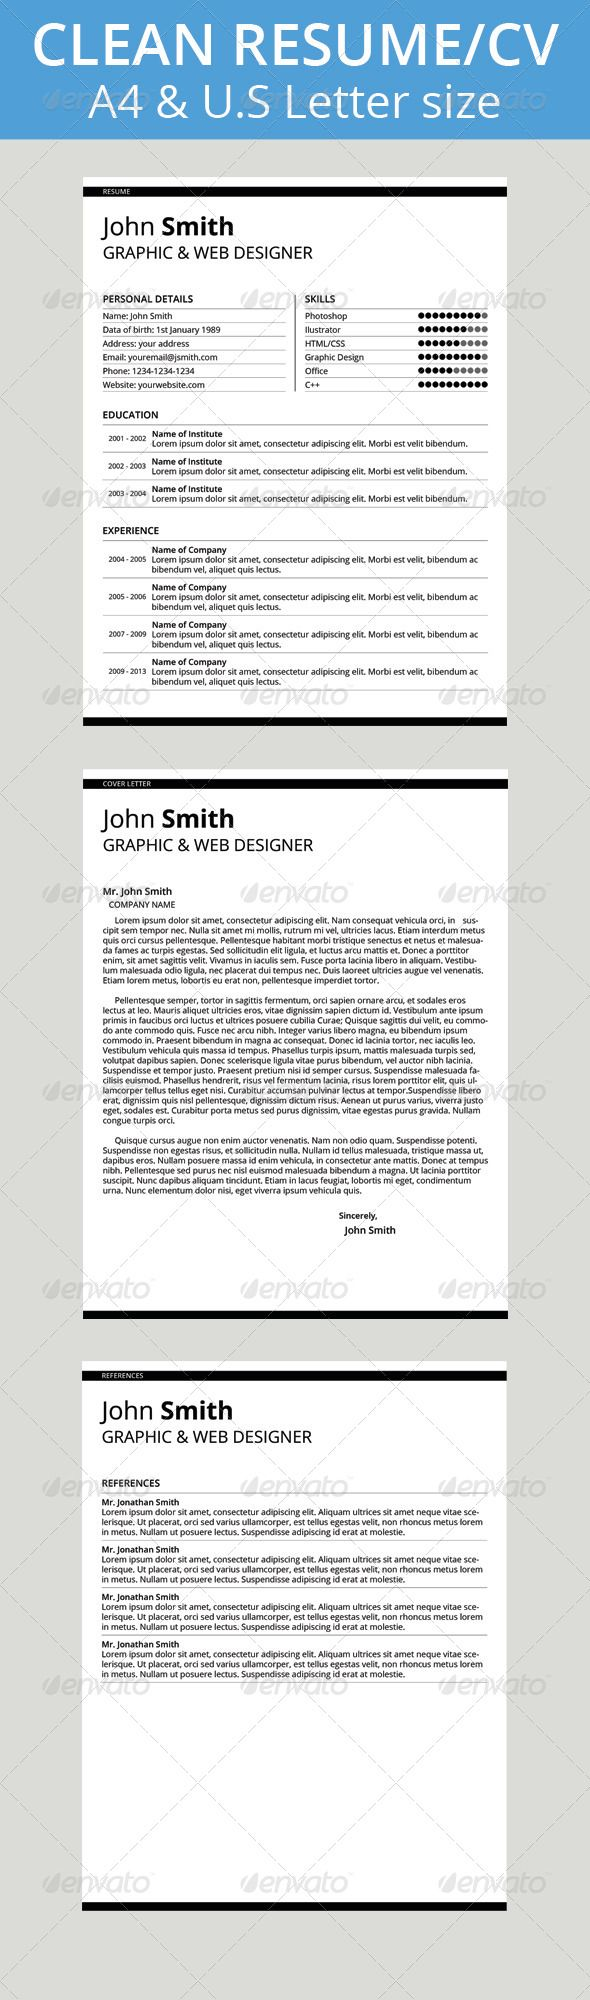 Personal Letter Of Reference Template Clean Resumecv  Resume Cv Resume Cover Letters And Template